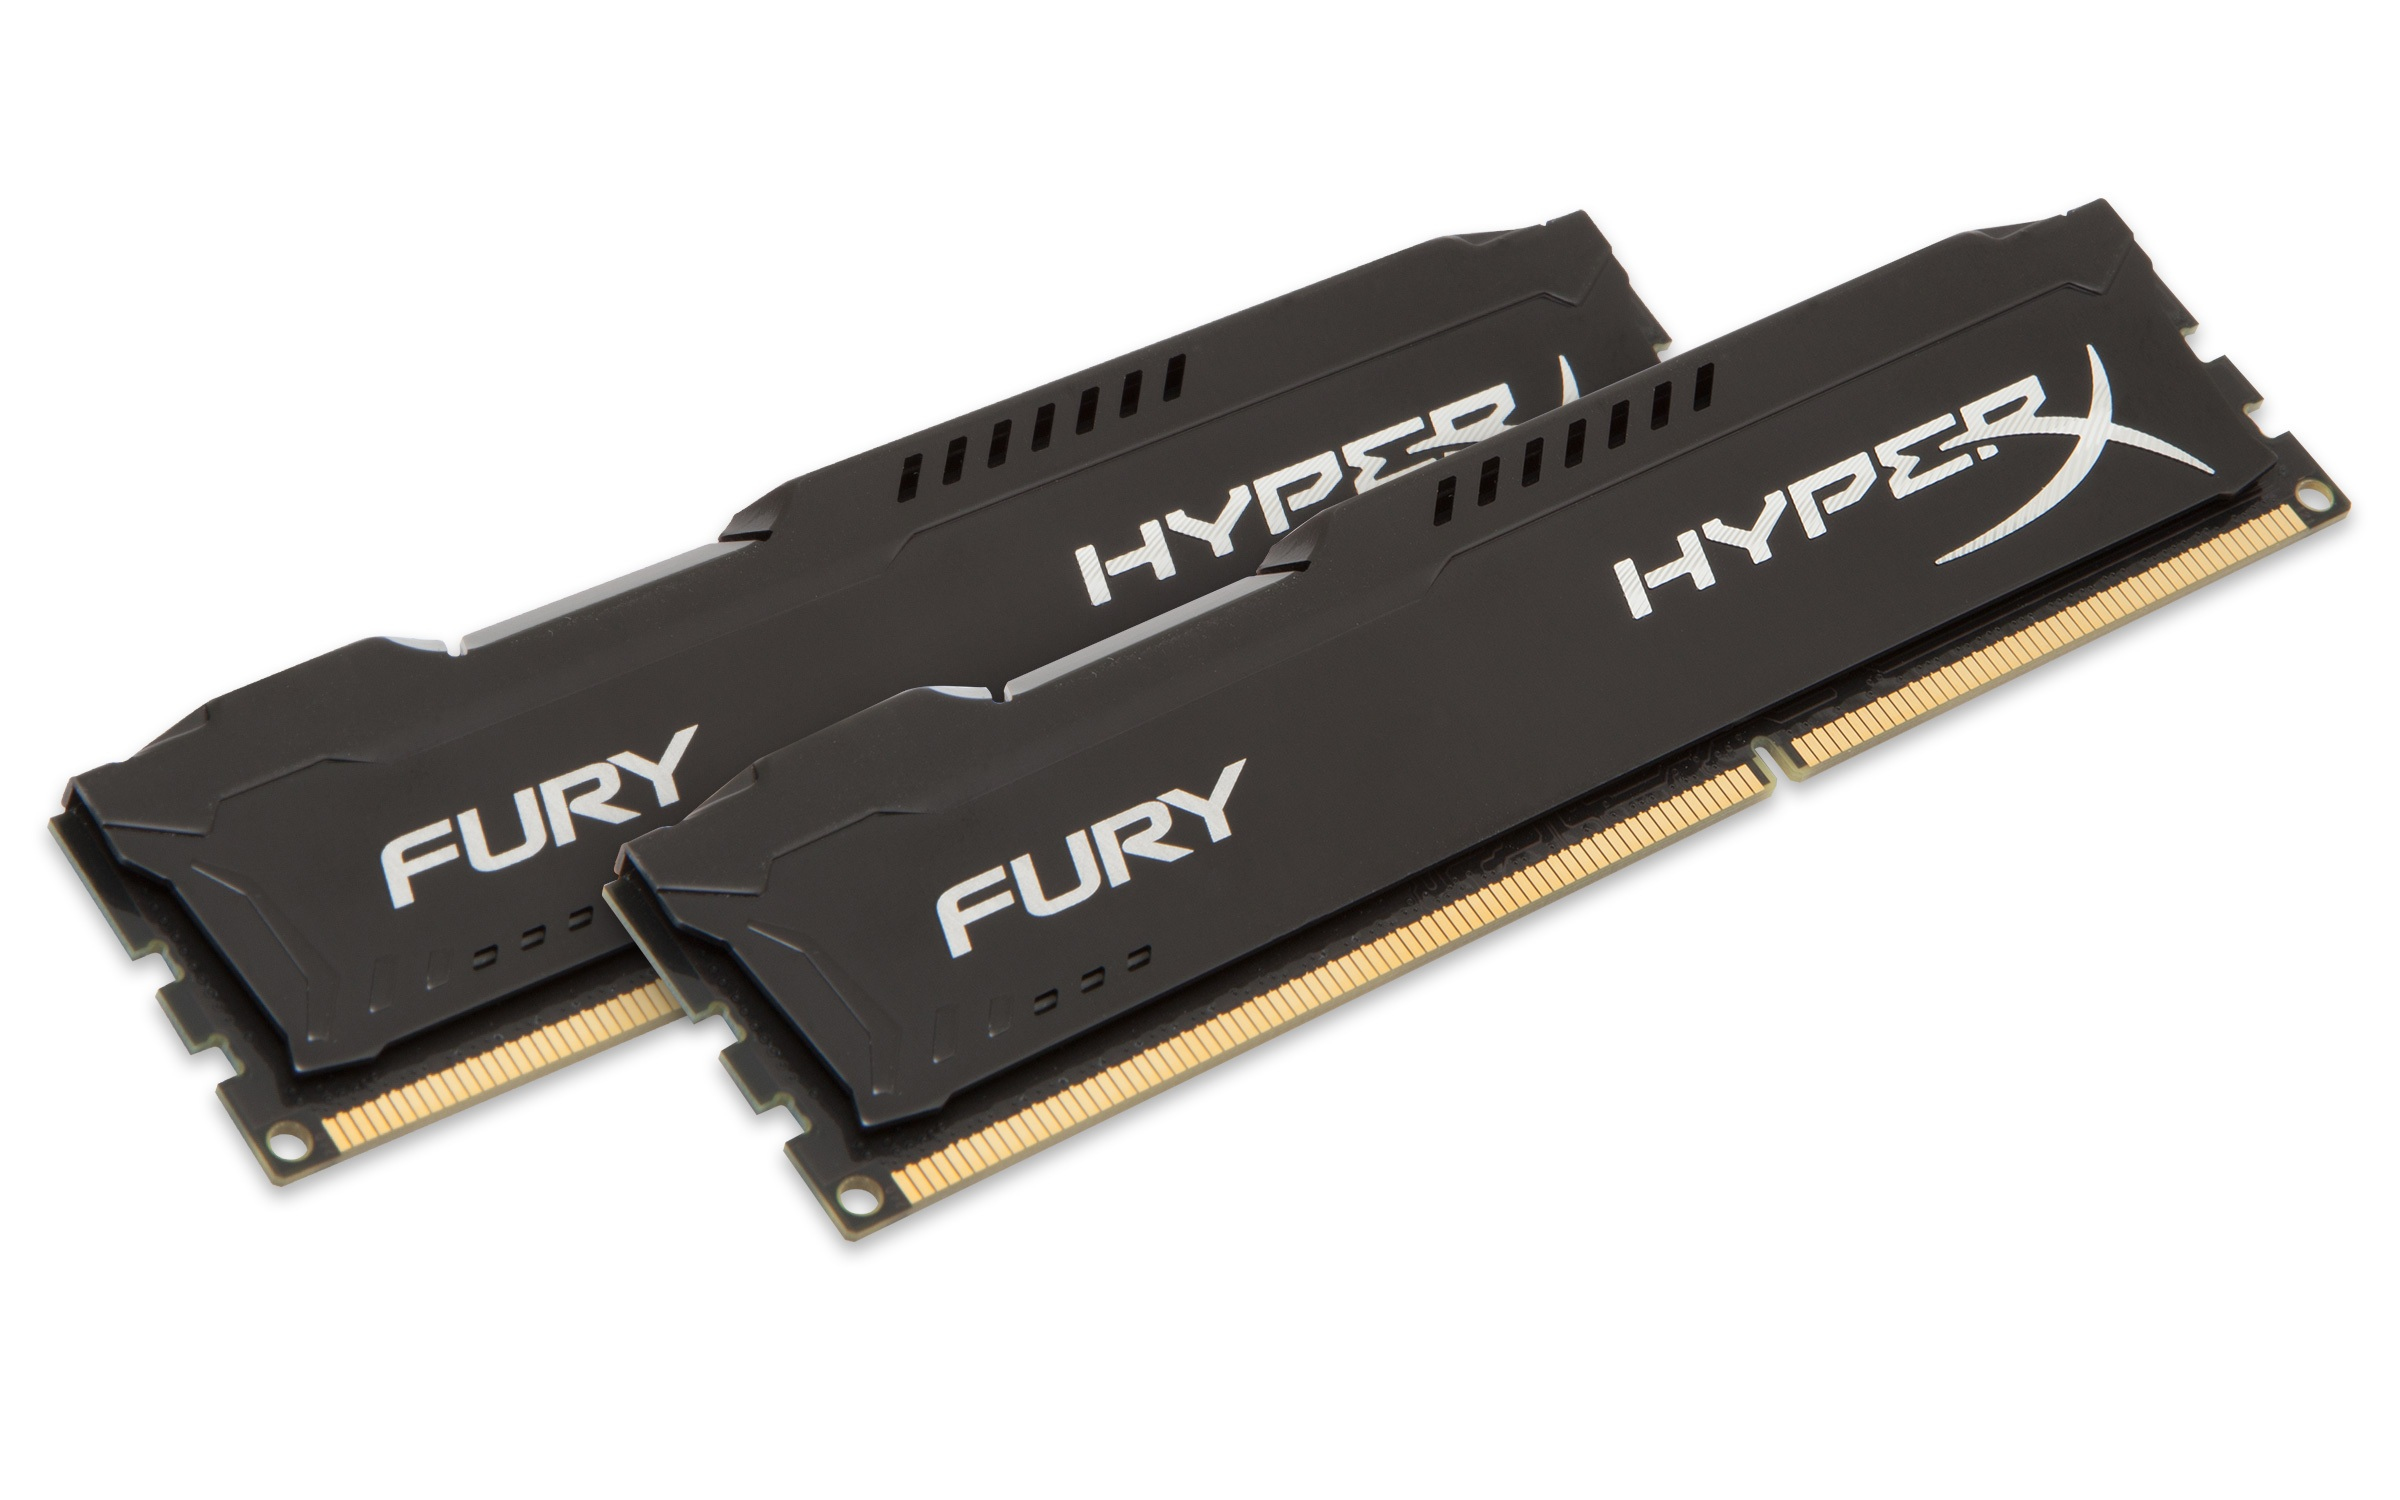 price of 16GB 1866MHz DDR3 CL10 DIMM (Kit of 2) HyperX FURY Black on ShopHub | ecommerce, price check, start a business, sell online